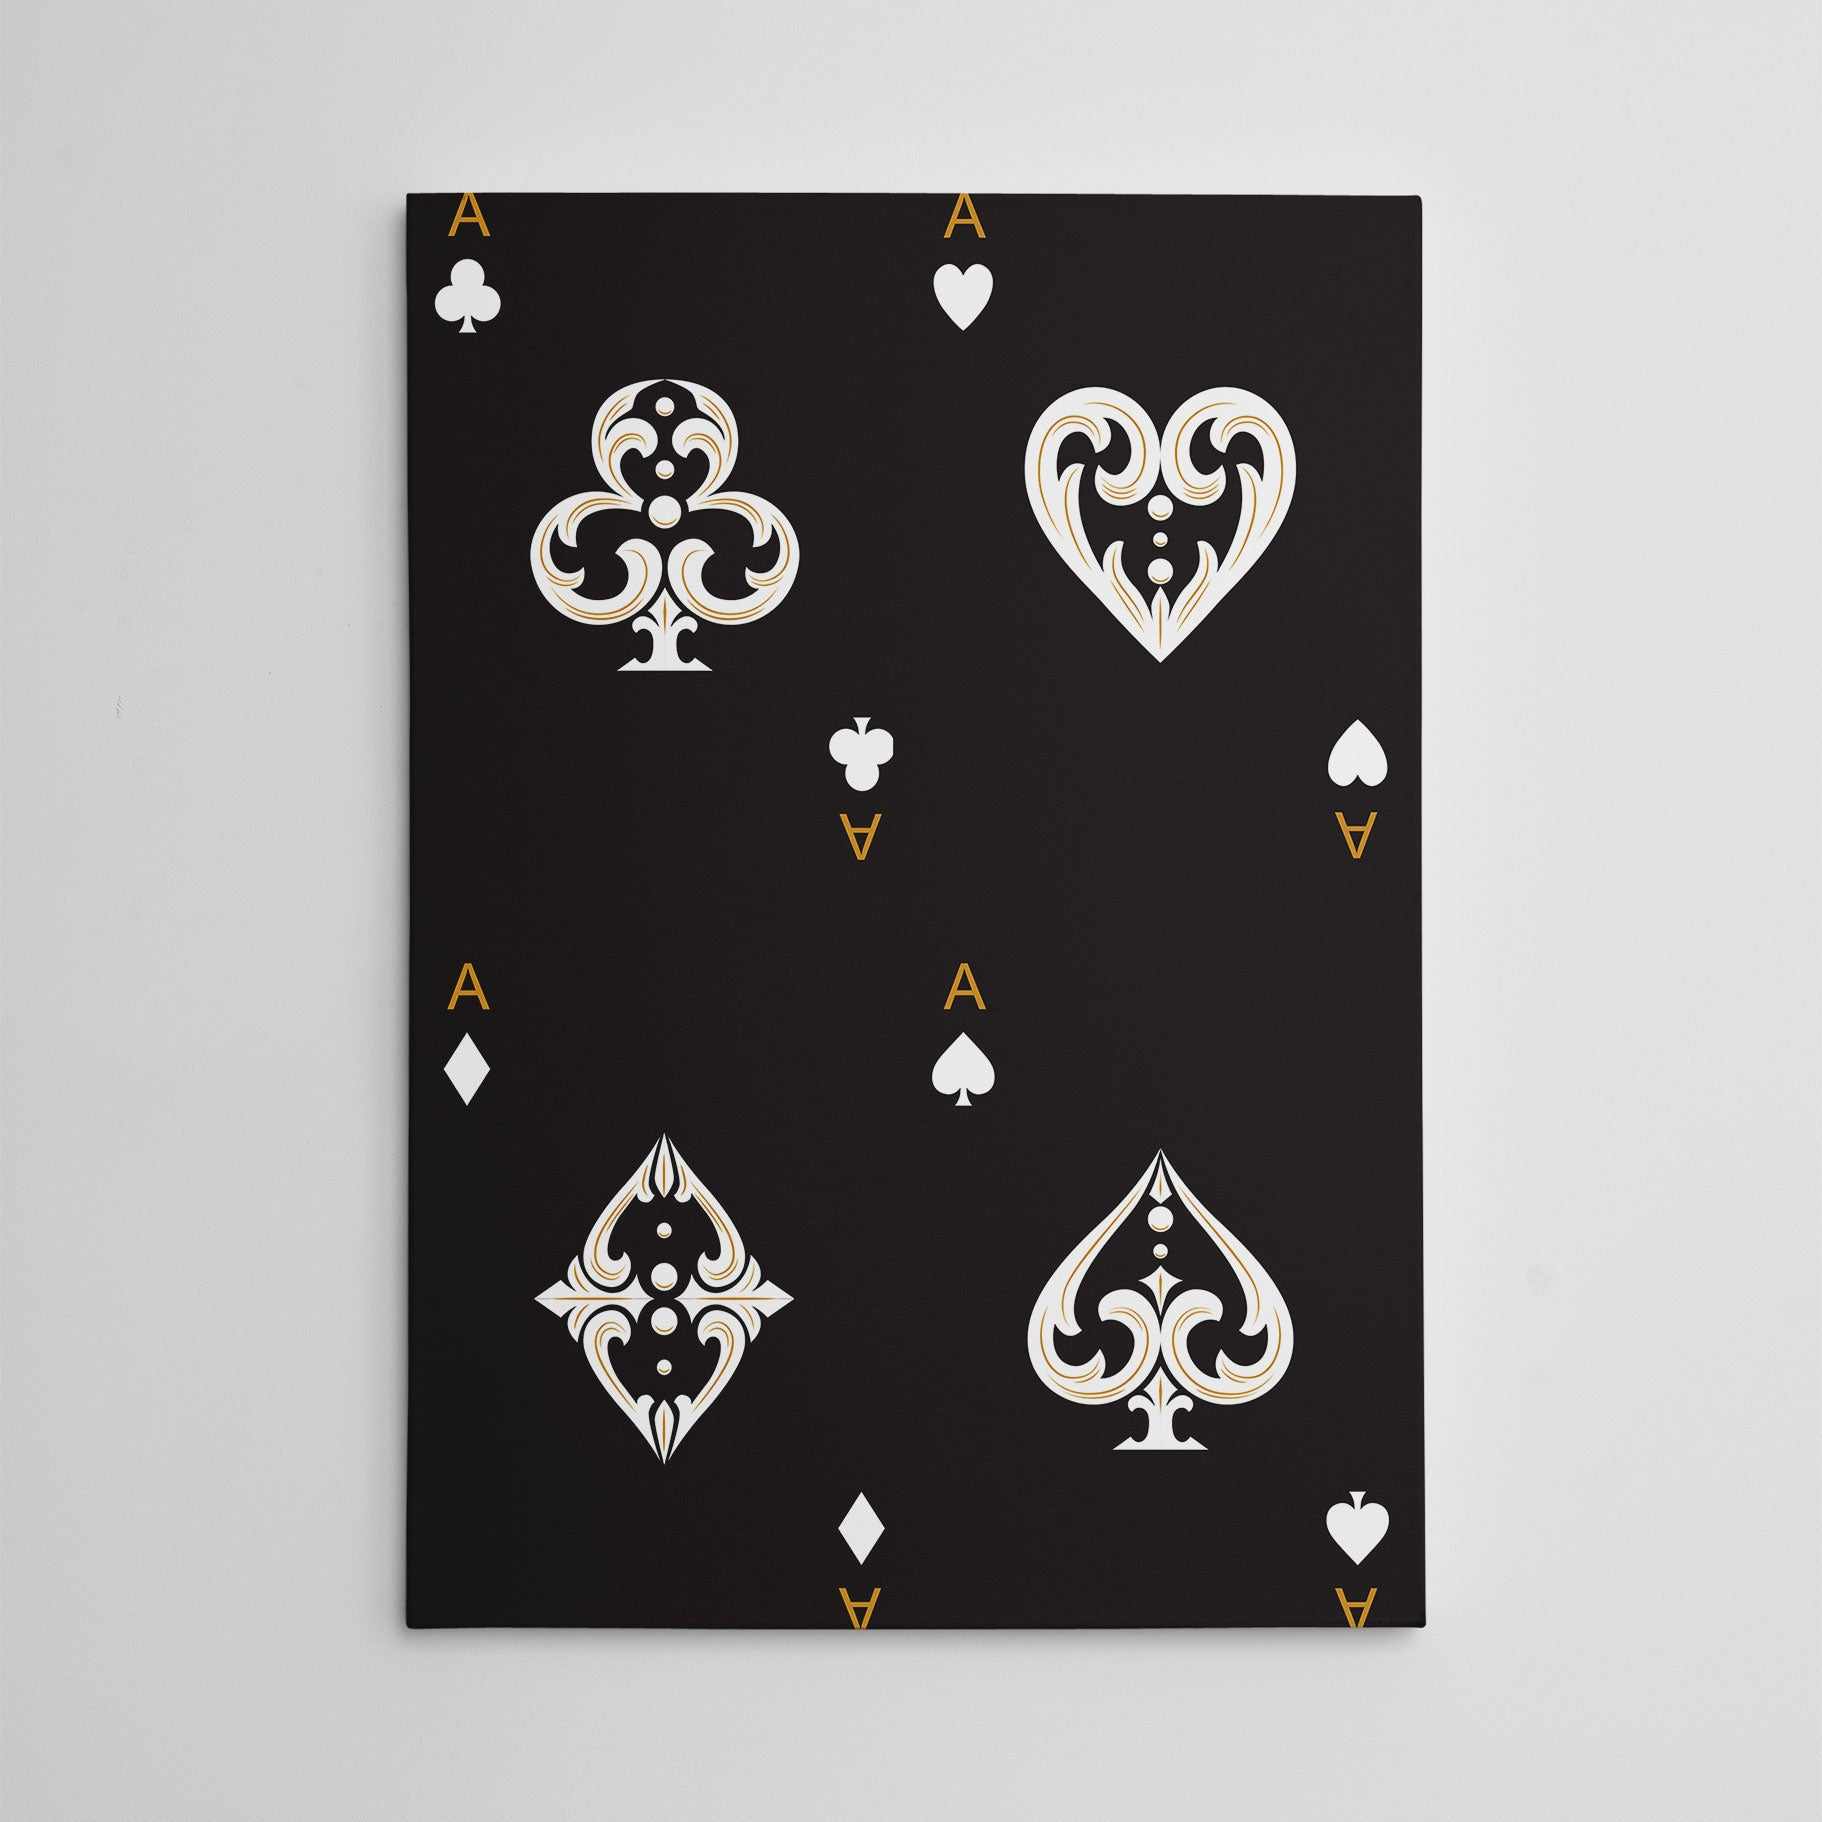 Canvas print with all ace cards, on black background.